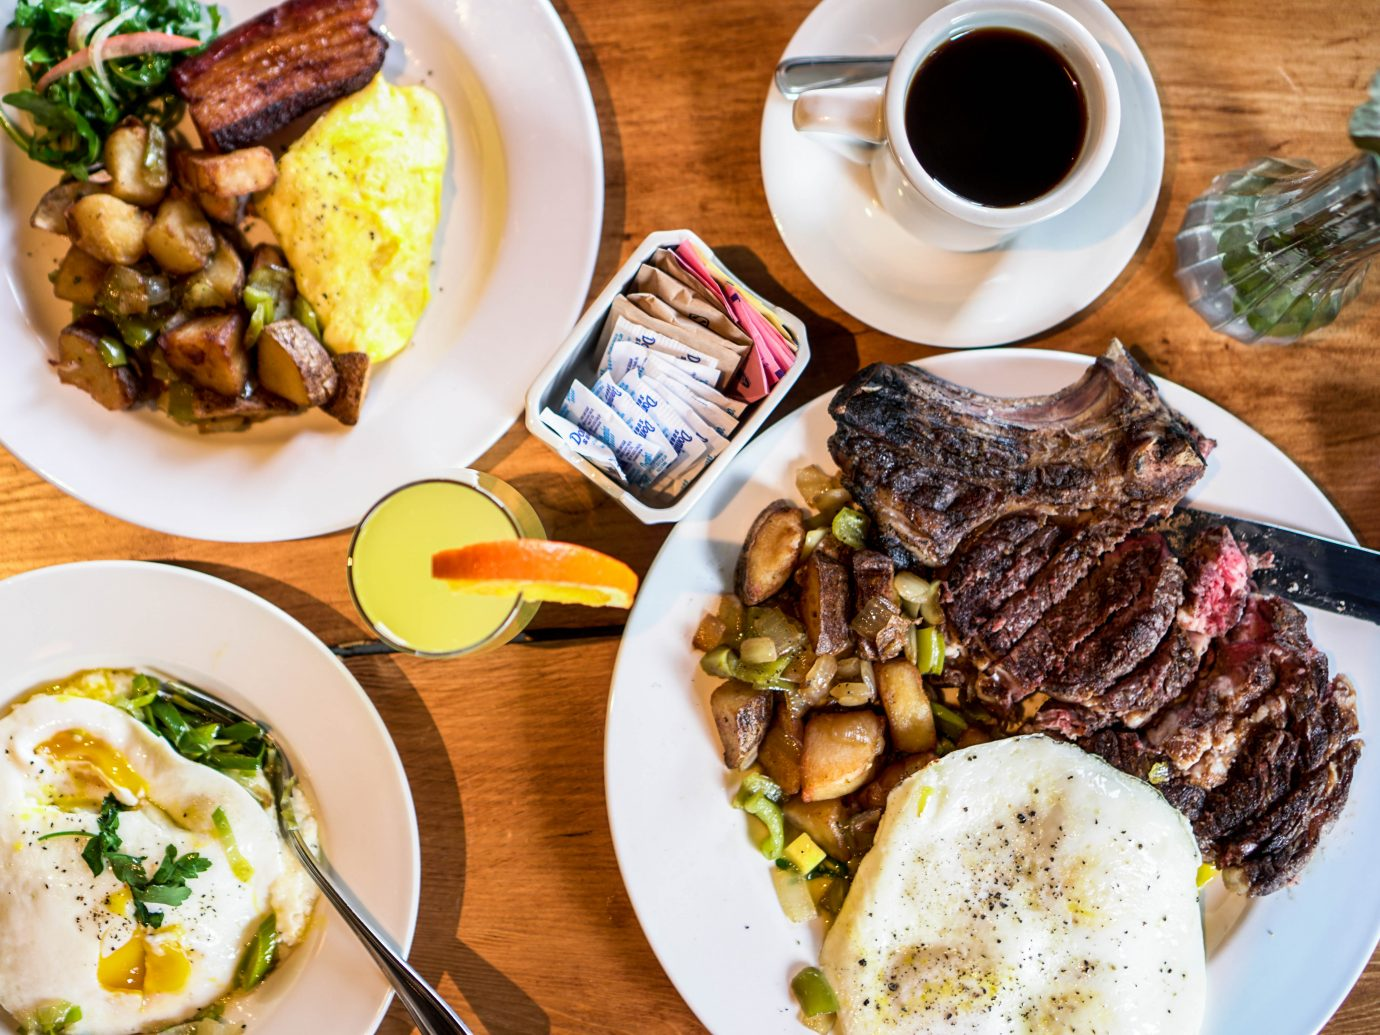 Brunch plates at Brooklyn Cider House